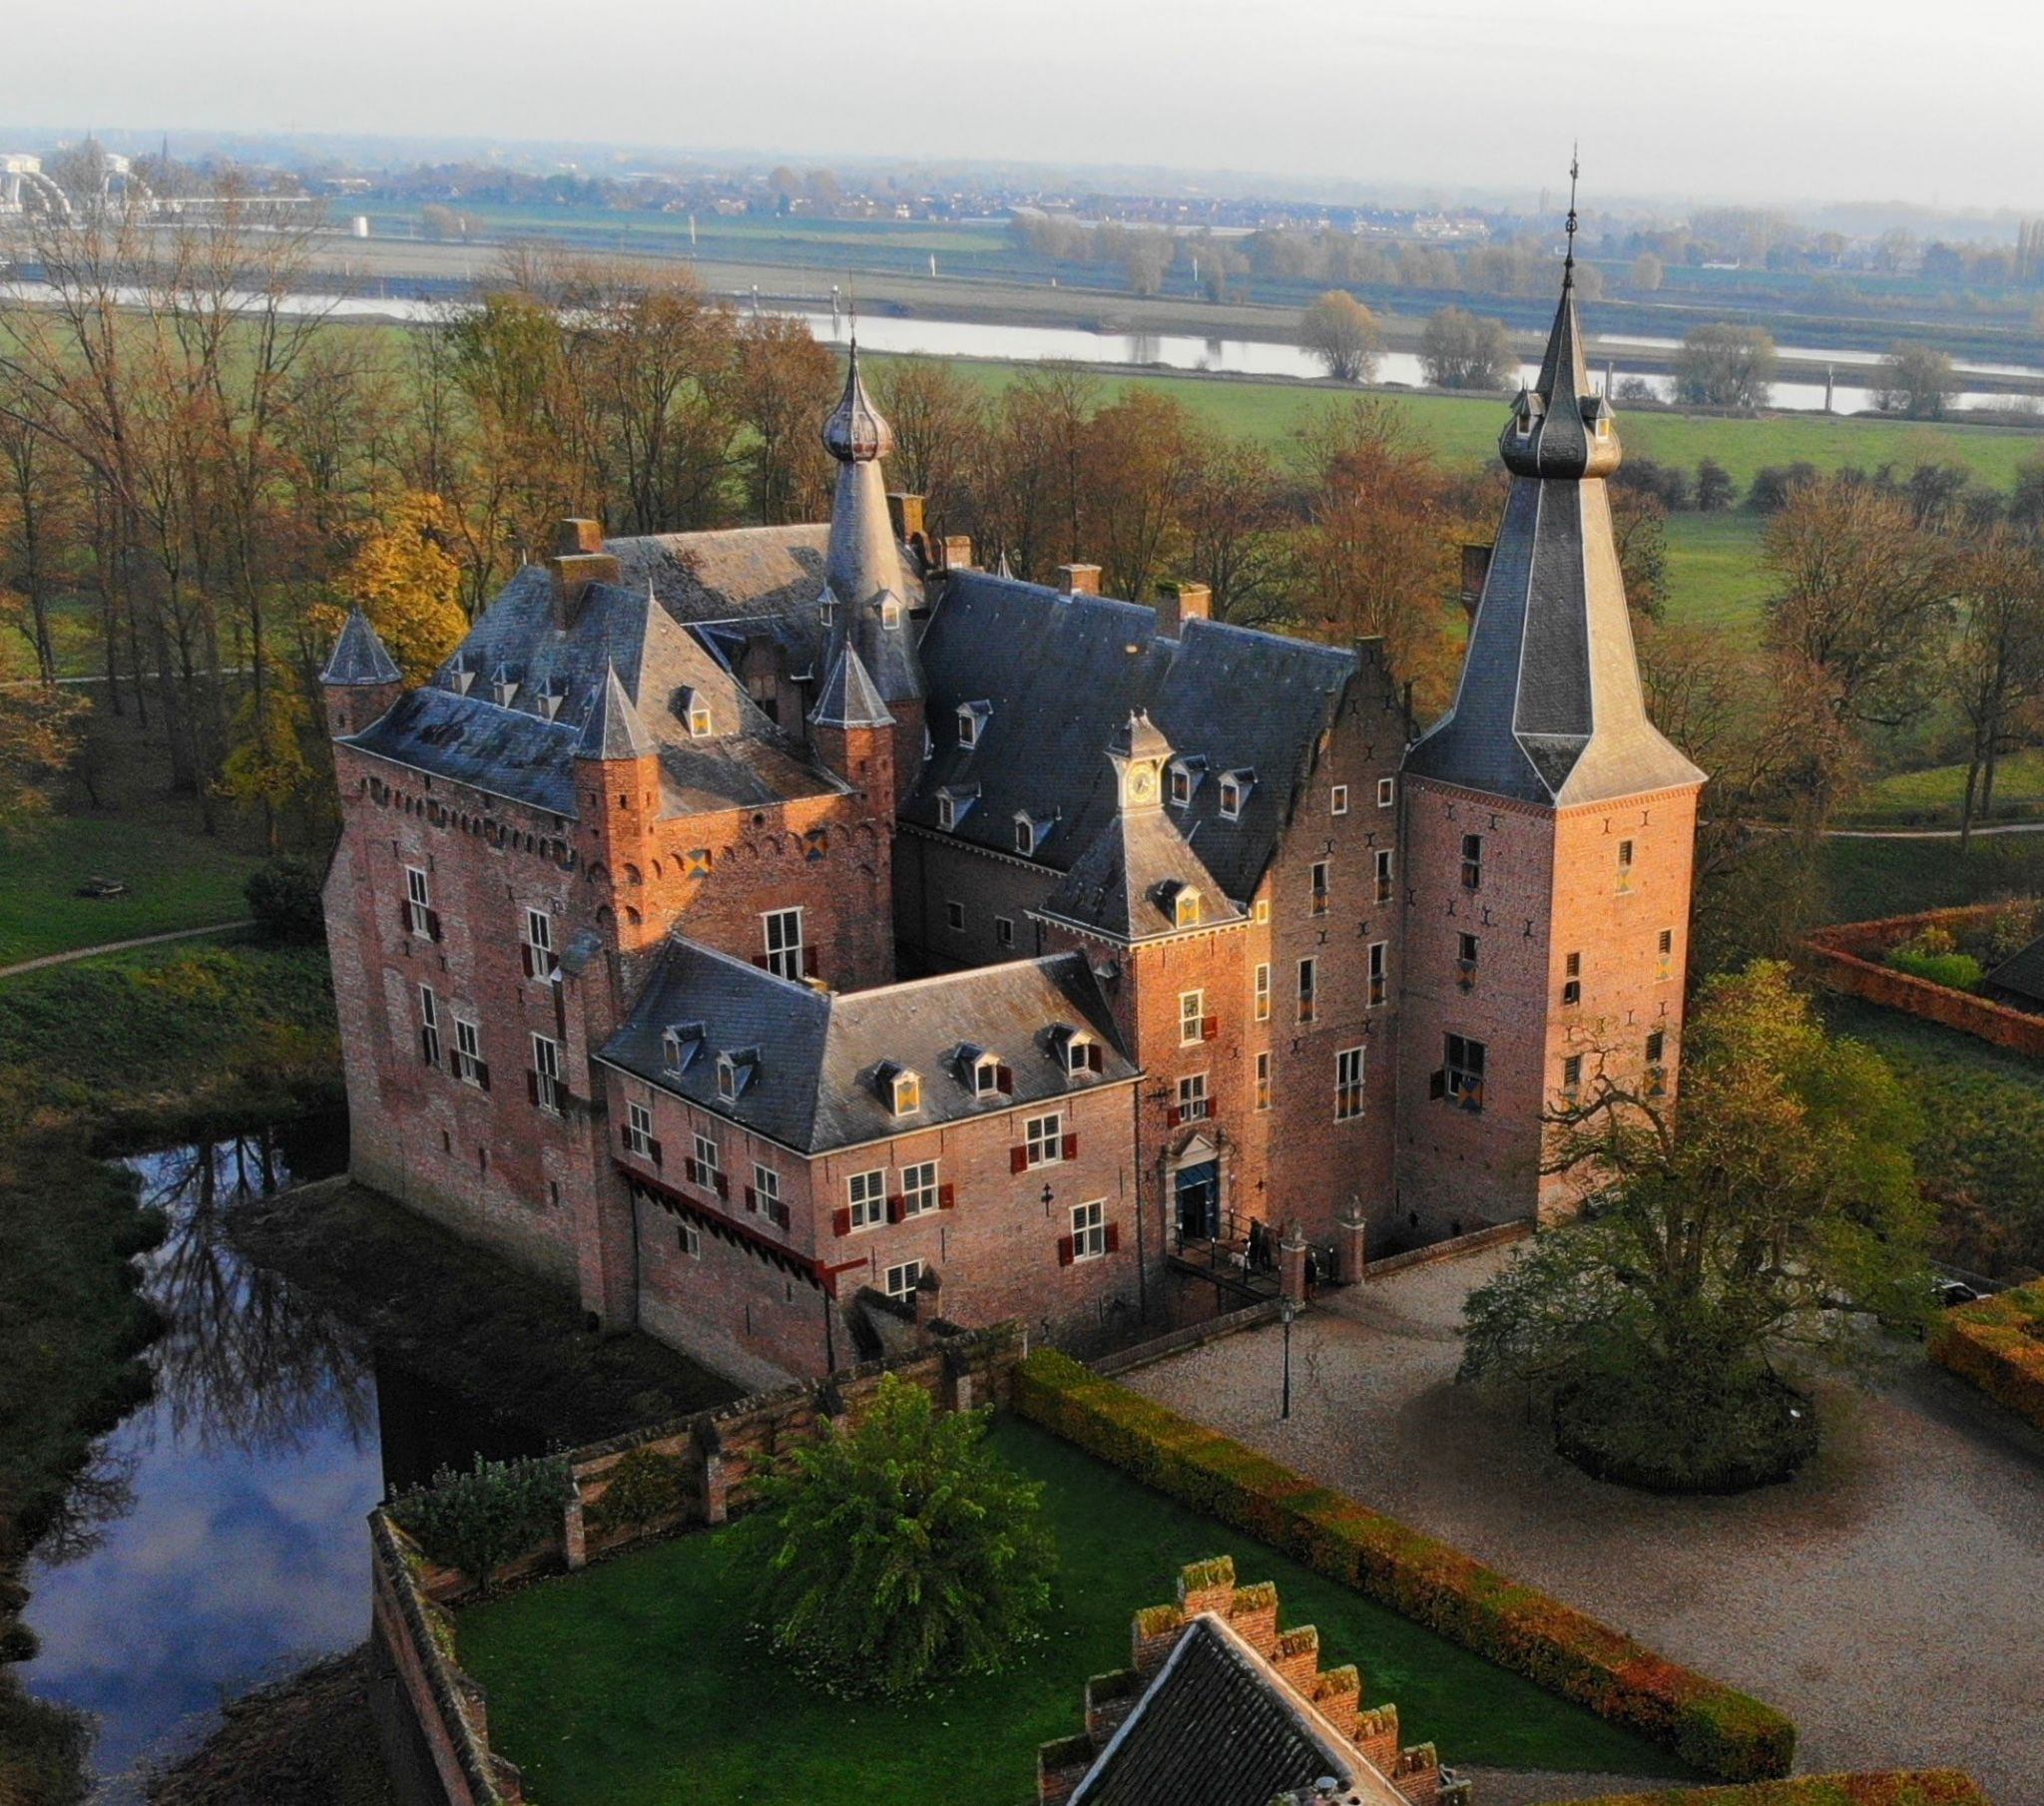 Doorwerth Castle, Netherlands